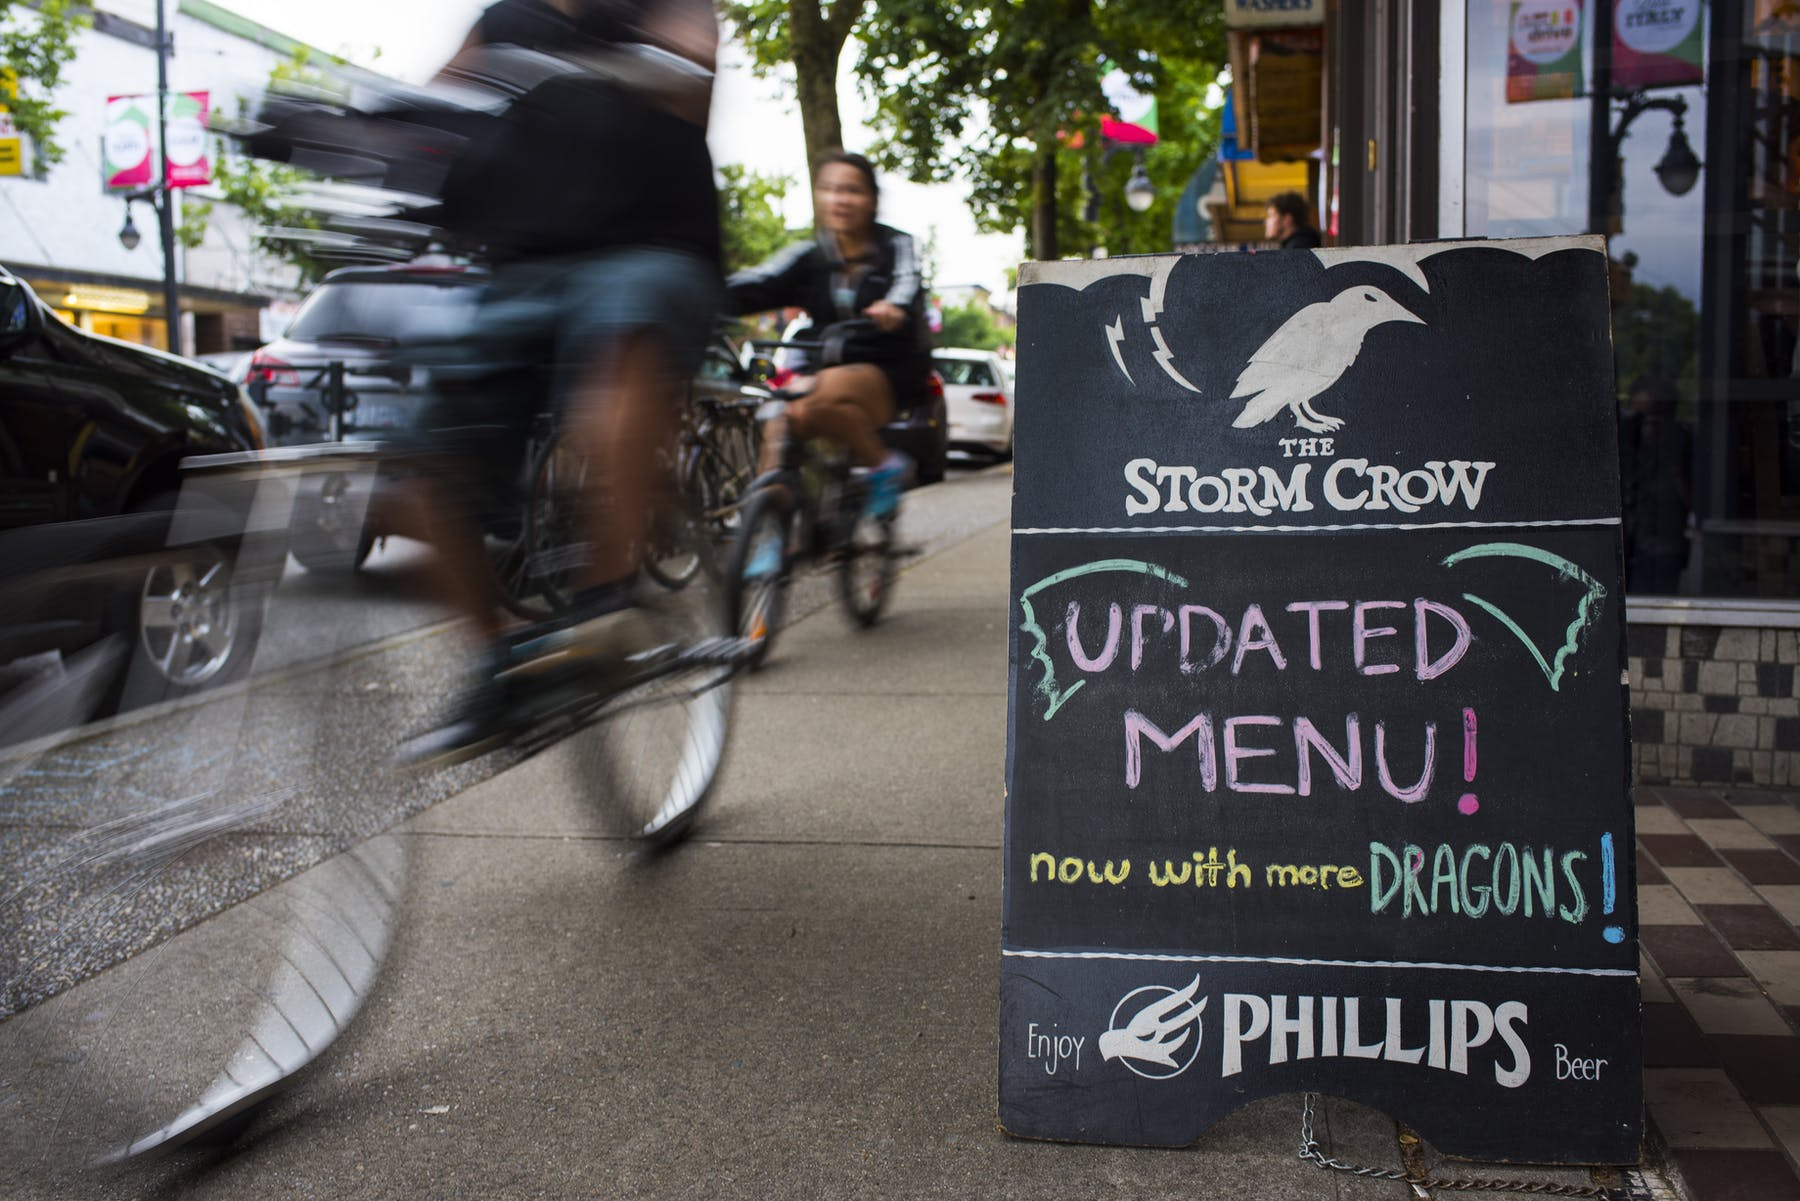 Convenient location for walking and biking to Storm Crow Tavern